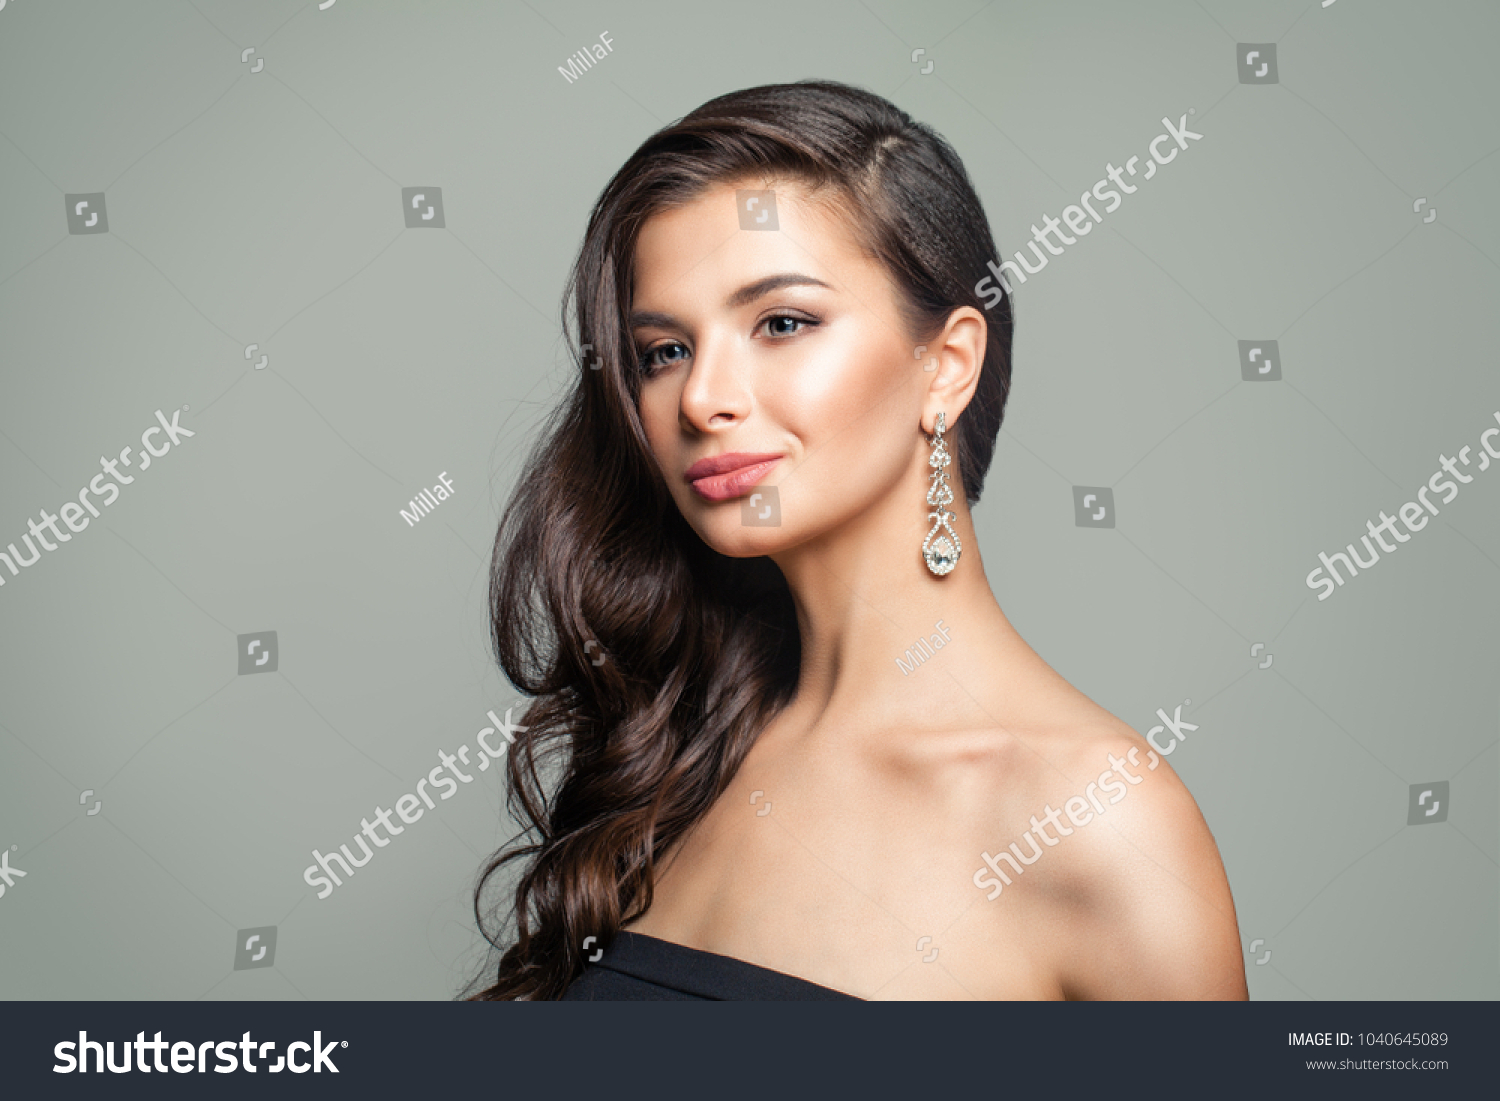 brunette dangle woman photo adult wearing image of stock to side earrings looking